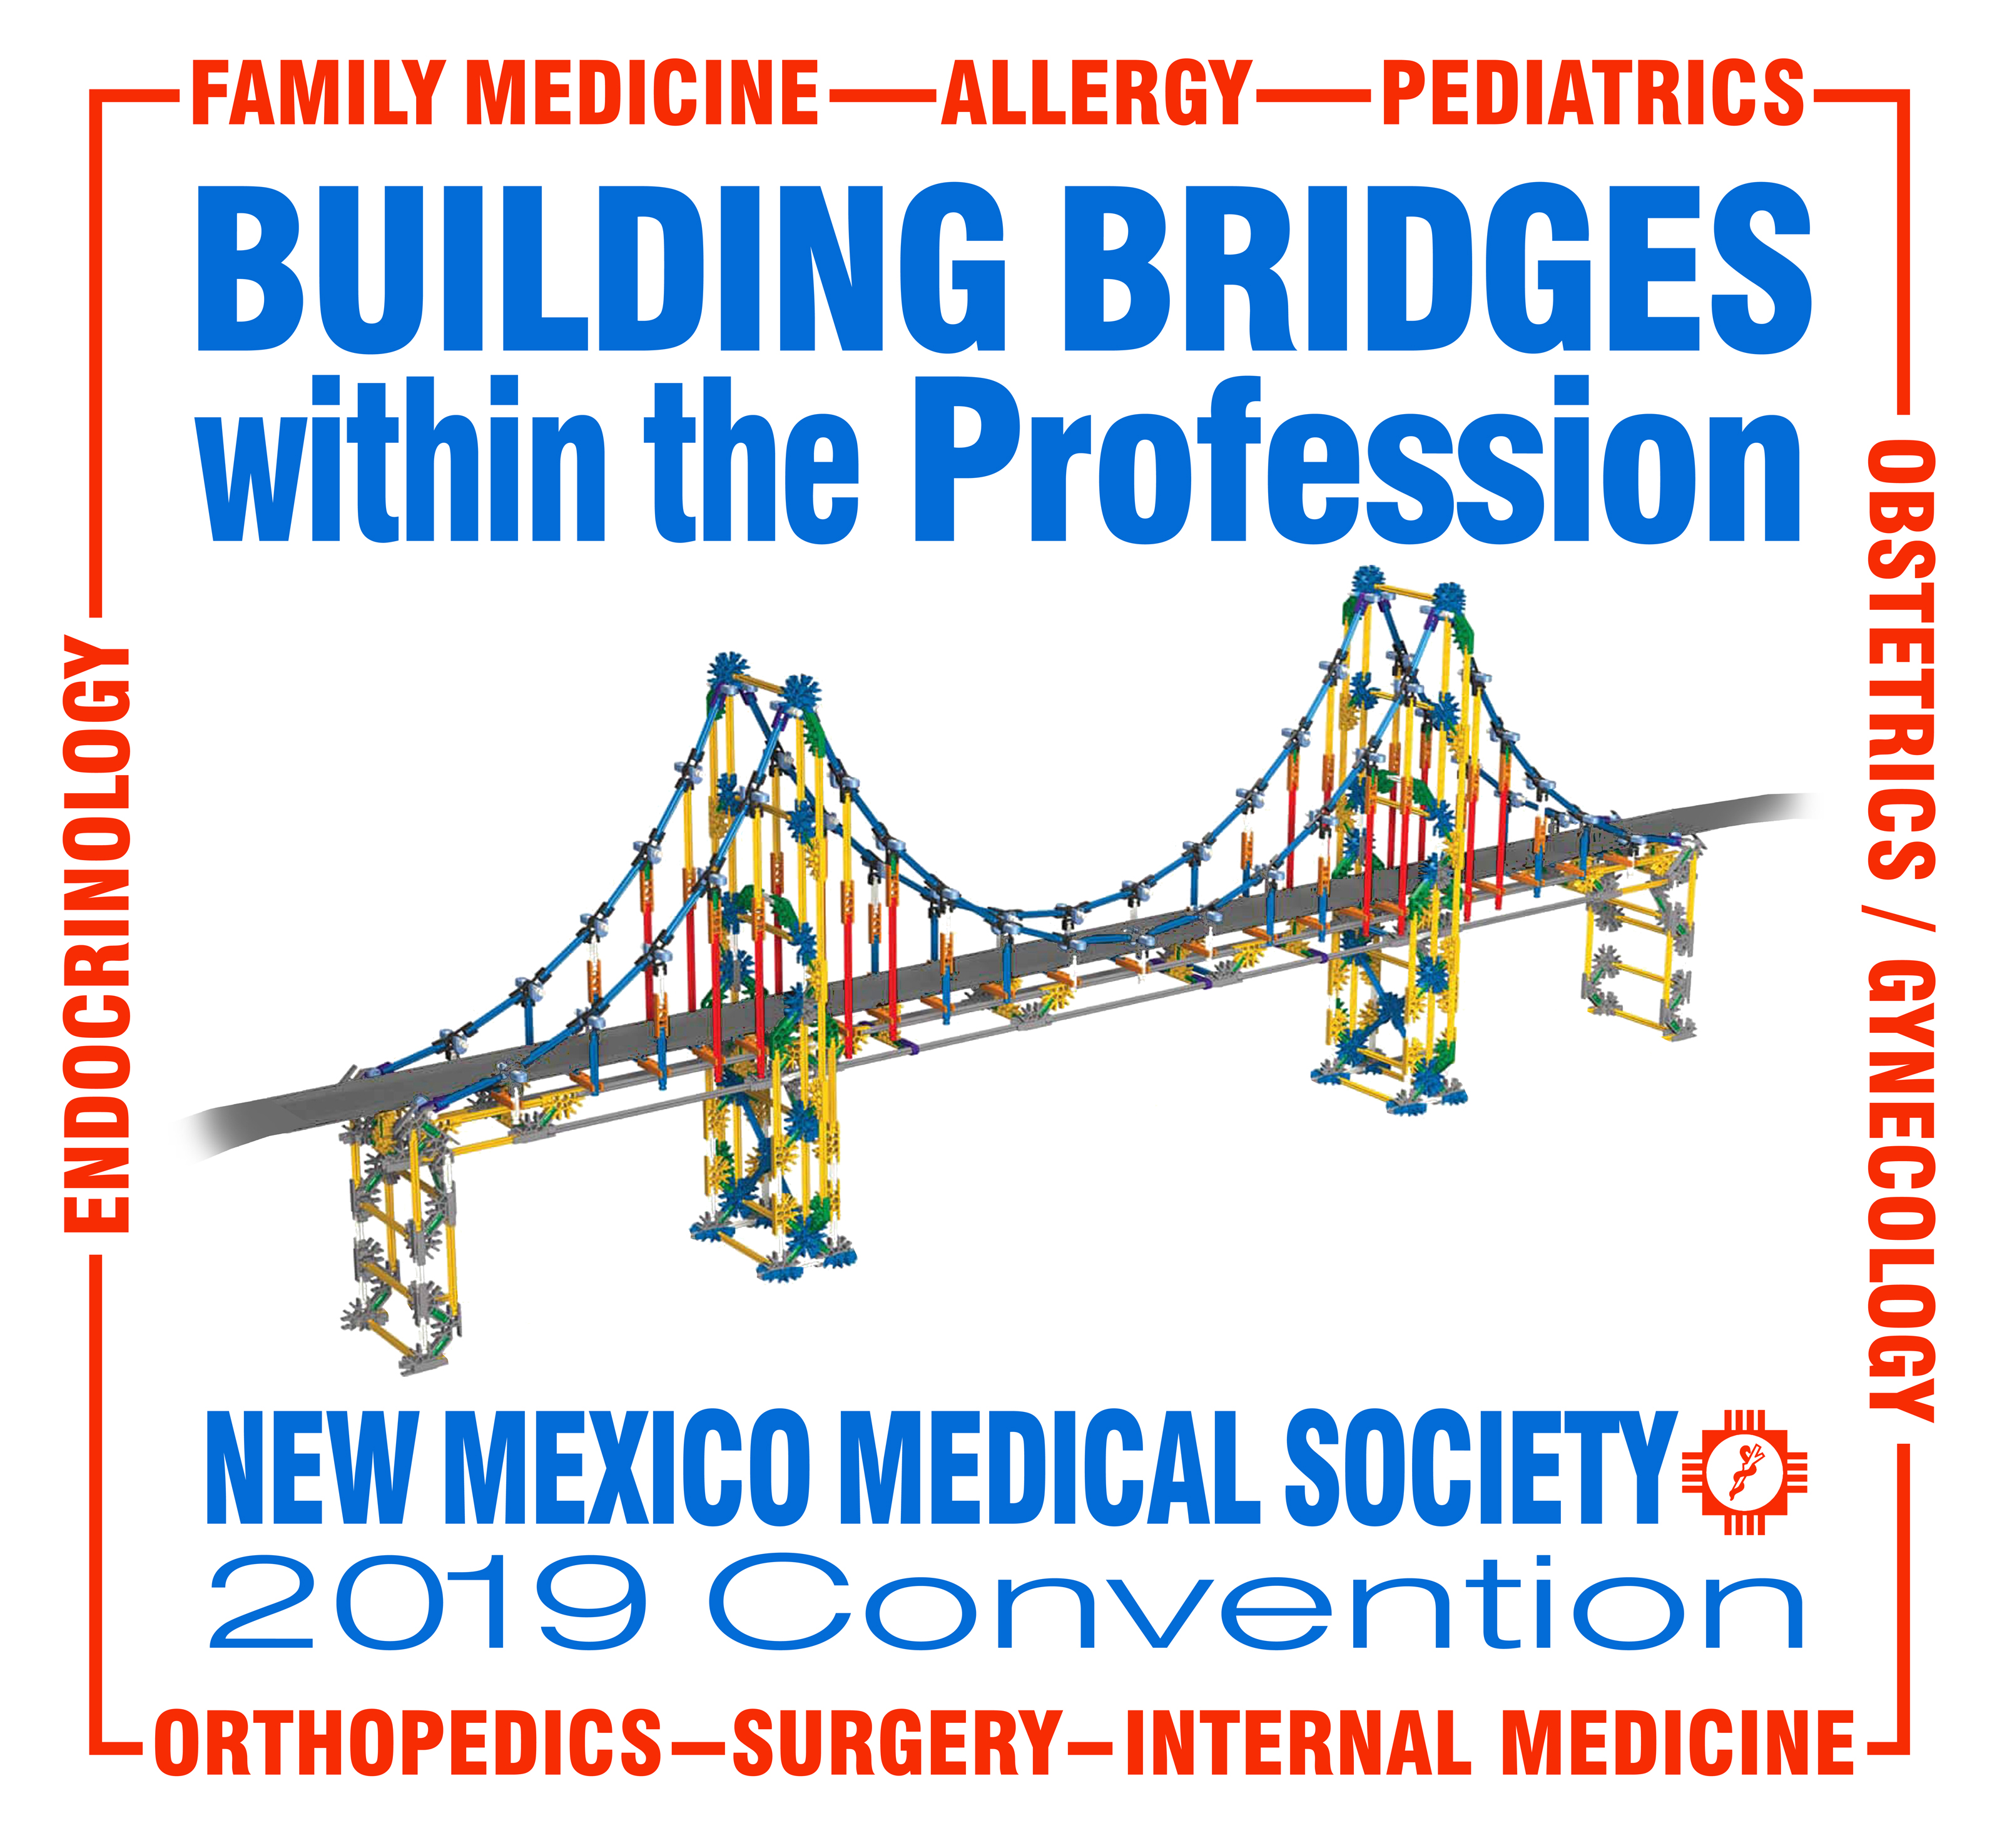 New Mexico Medical Society- Serving New Mexico since 1886